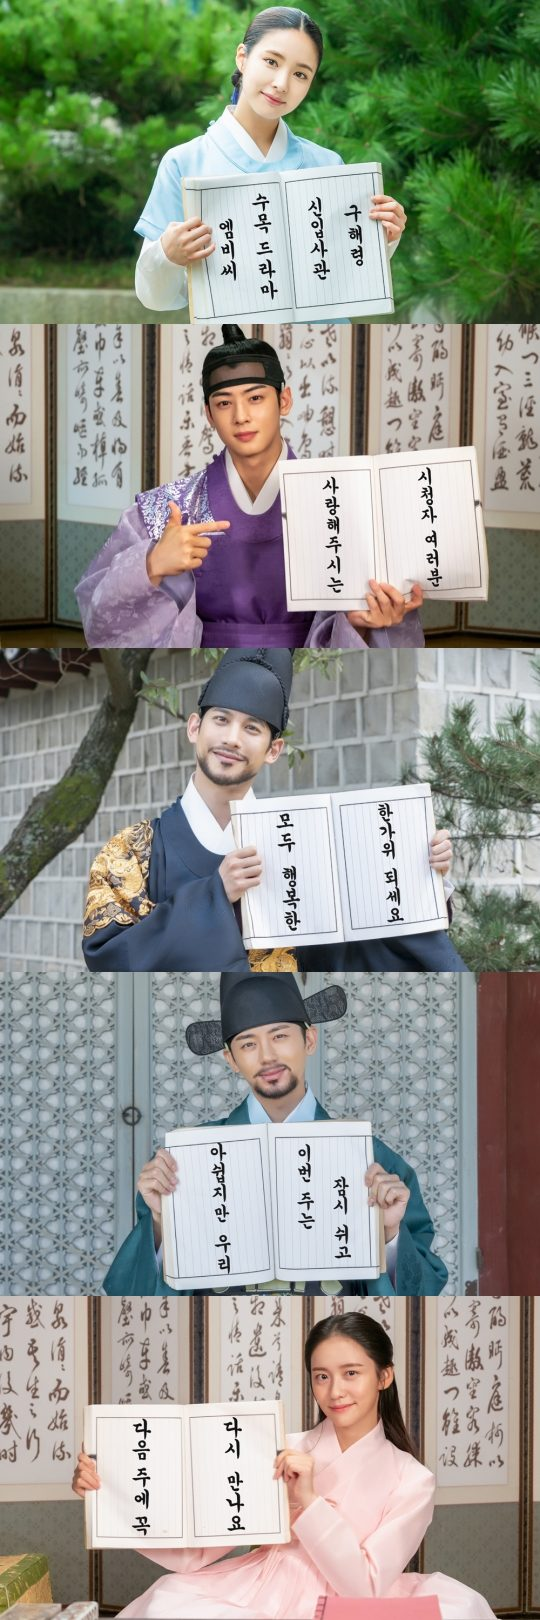 """<p>MBC 'a new Museum for the command in'Shin Se-kyung, the car is, the night before the hero, Lee JI Hoon, Hyeon viewers special Thanksgiving greeting to I was. These are Thanksgiving since more and more rich storyline to find and come unannounced.</p><p>The actors in each policy unfold 'MBC every new pipe to the command to love to the viewers, all the Happiness one is around to see! But we this week is a break next week, again I called The Message: The Bible in Contemporary Langua for people.</p><p>Blue officer uniform and clean charm and boast that Shin Se-kyung is """"sending love and support to feel good in the shooting,""""he Thank said. Also """"Happiness for the holidays send hope""""and Thanksgiving is also added.</p><p>Last week, broadcast from the heart-wrenching confession as viewers rang the car is very exciting with a smile is what. He said: """"the rich holidays and our rich Vavuniya to find that?""""a few days next week for the broadcast to was.</p><p>A hero is a soft attraction to strutting """"the nations feast, one for families and a good time I hope,""""he said. This lesson is extremely important Blunt Officer Democratic support, unlike the playful look with a delightful Thanksgiving greeting I was. He said: """"in the hot summer shooting started any morning sickness Thanksgiving is. The family and the décor is""""and """"to command love for""""cute greeting to finish.</p><p>Hyeon is a Museum well comely Mufti out of. He is """"the Thanksgiving holiday for the fat lot of nothing but next week in more love and call that""""a few days just to smile.</p><p>Last broadcast 29-32 times in sudden this picture(the car is), and a mixed case prepared by the spirit(Shin Se-kyung Min)and the love of this crisis was right. The command is this picture of a friendly love confession to end refused, and the two men staggered comes to mind, etc. Among these 20 years ago, and the support acts will gradually sleep for obvious.</p><p>'A new Museum for the command' 33-34 times Thanksgiving holiday, never open """